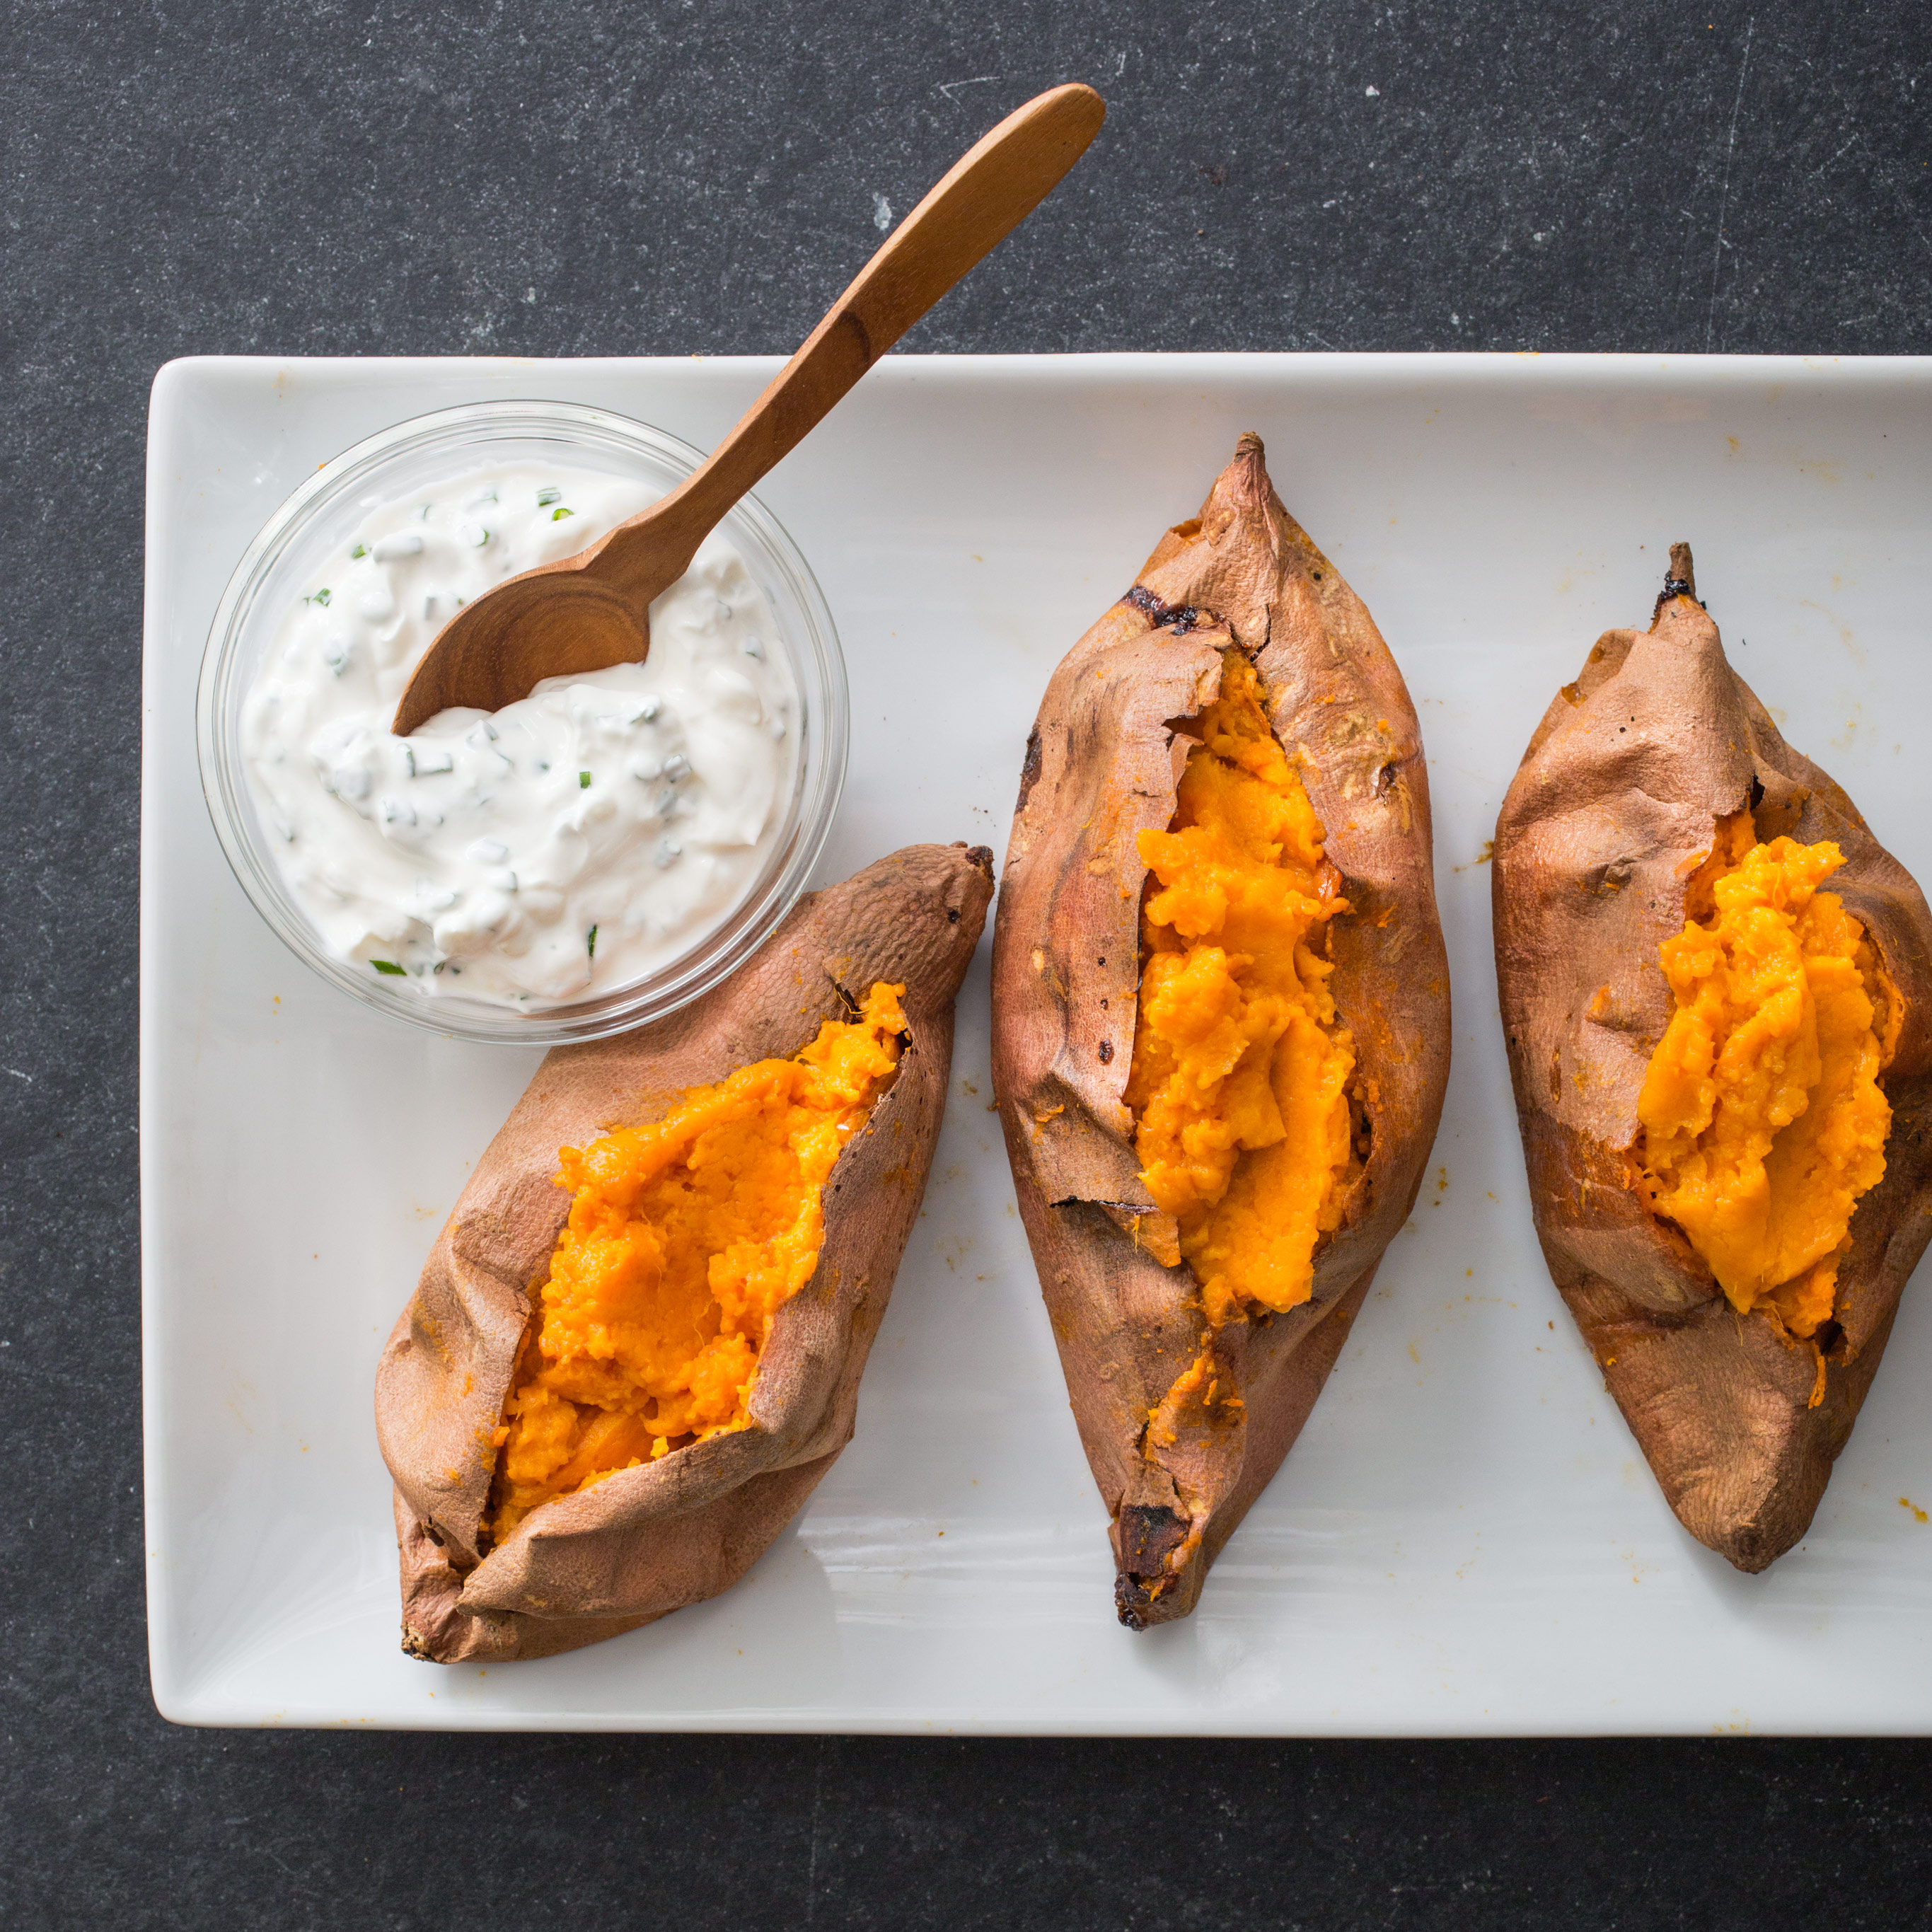 Best Baked Sweet Potatoes | Cook's Illustrated